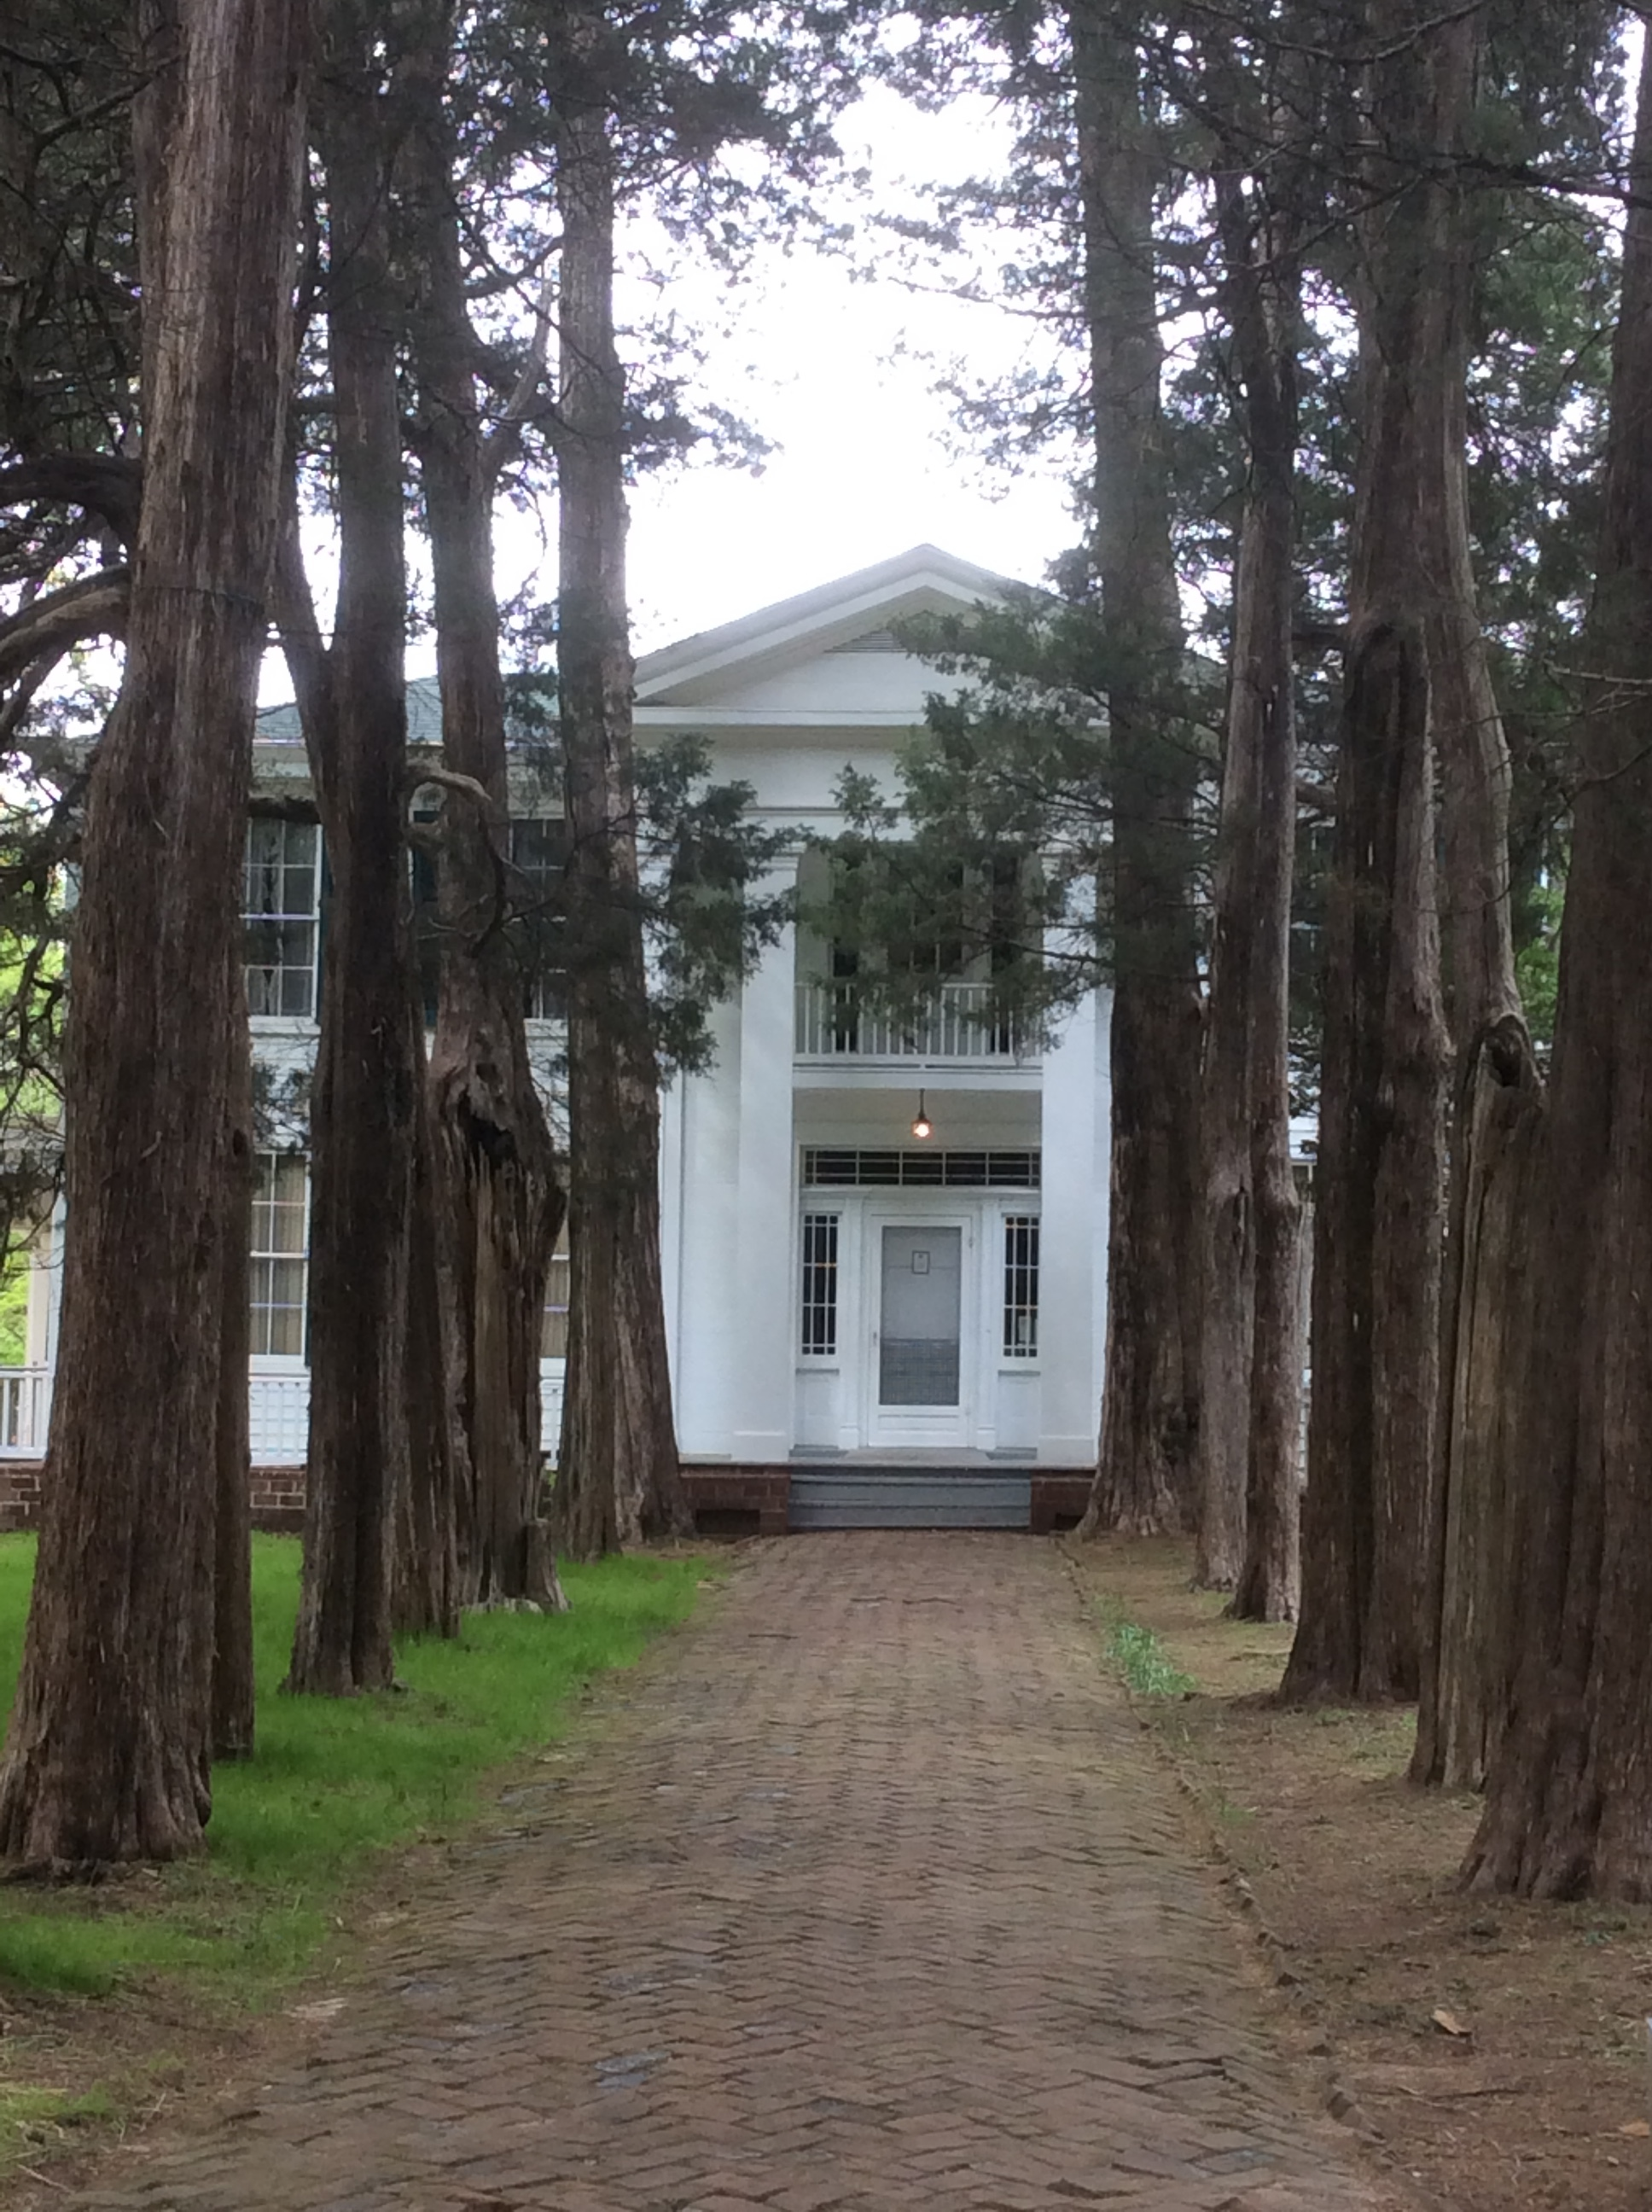 William Faulkner's Rowan Oaks